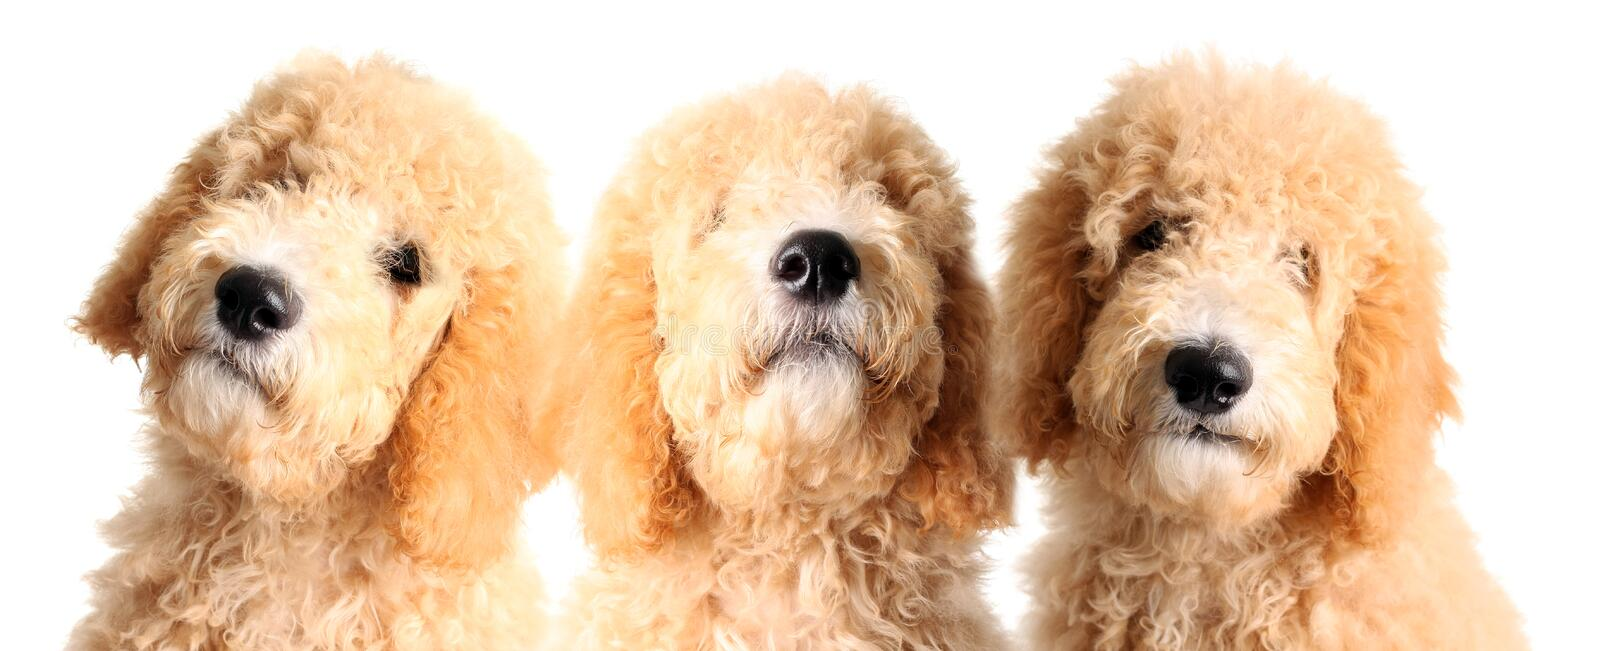 Cachorrinhos de Goldendoodle foto de stock